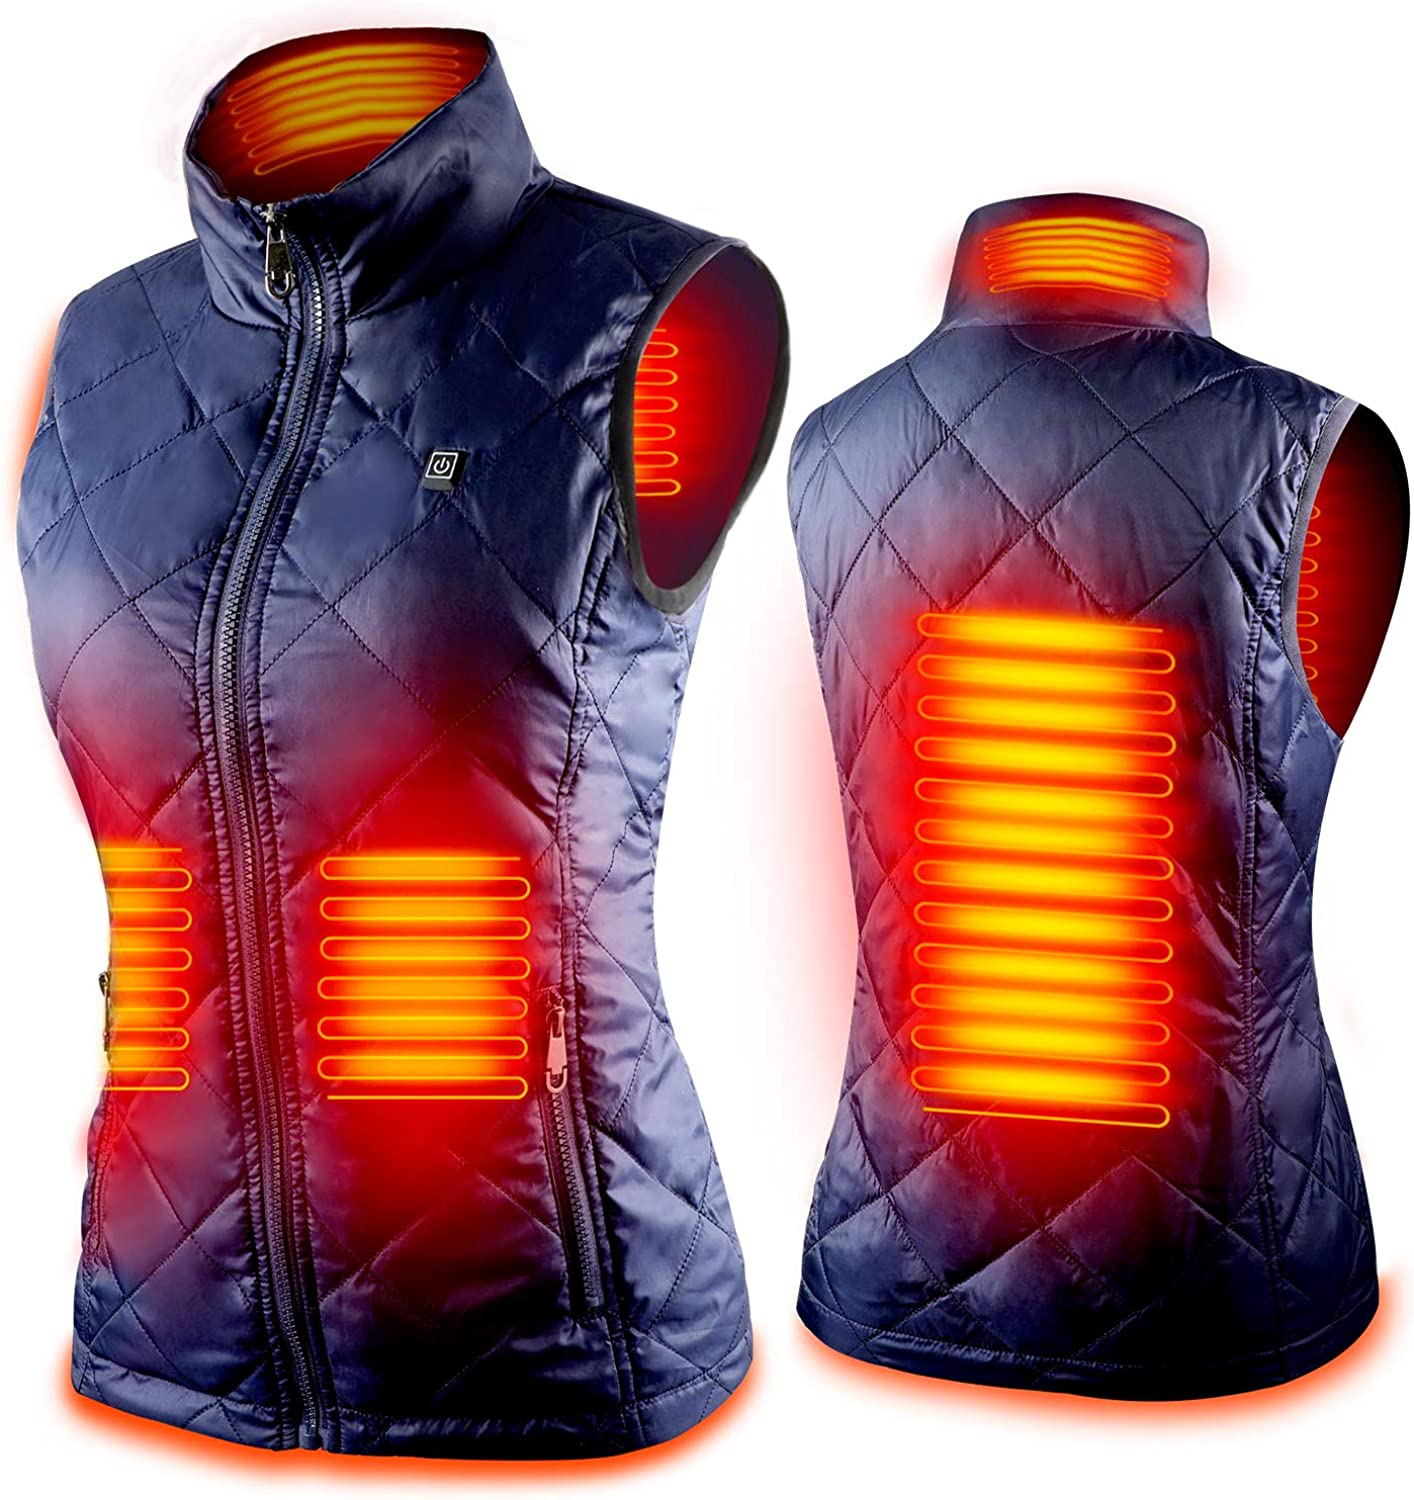 Women's Heated Vest with 3 Heating Levels